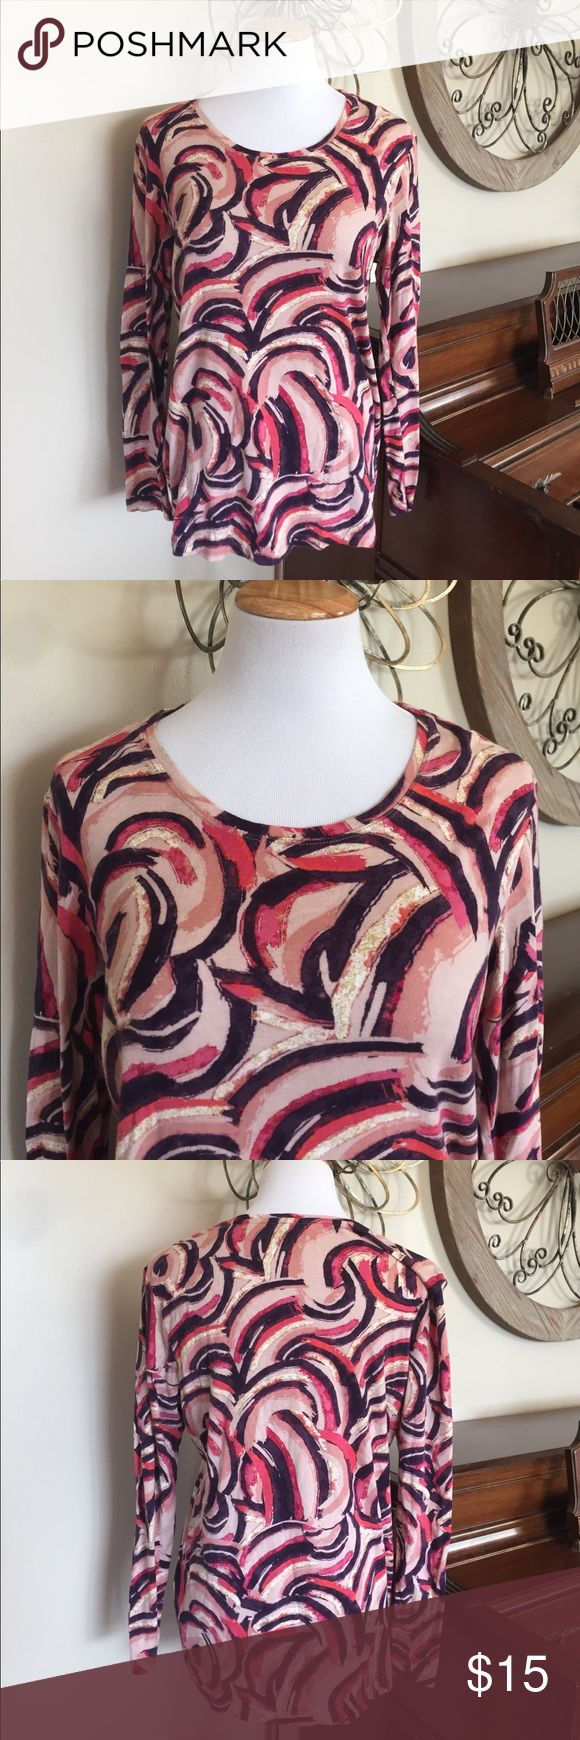 Daisy Fuentes Size XL Long Sleeve Tee Top Cute long sleeve top by Daisy Fuentes in great condition! Size XL Daisy Fuentes Tops Tees - Long Sleeve